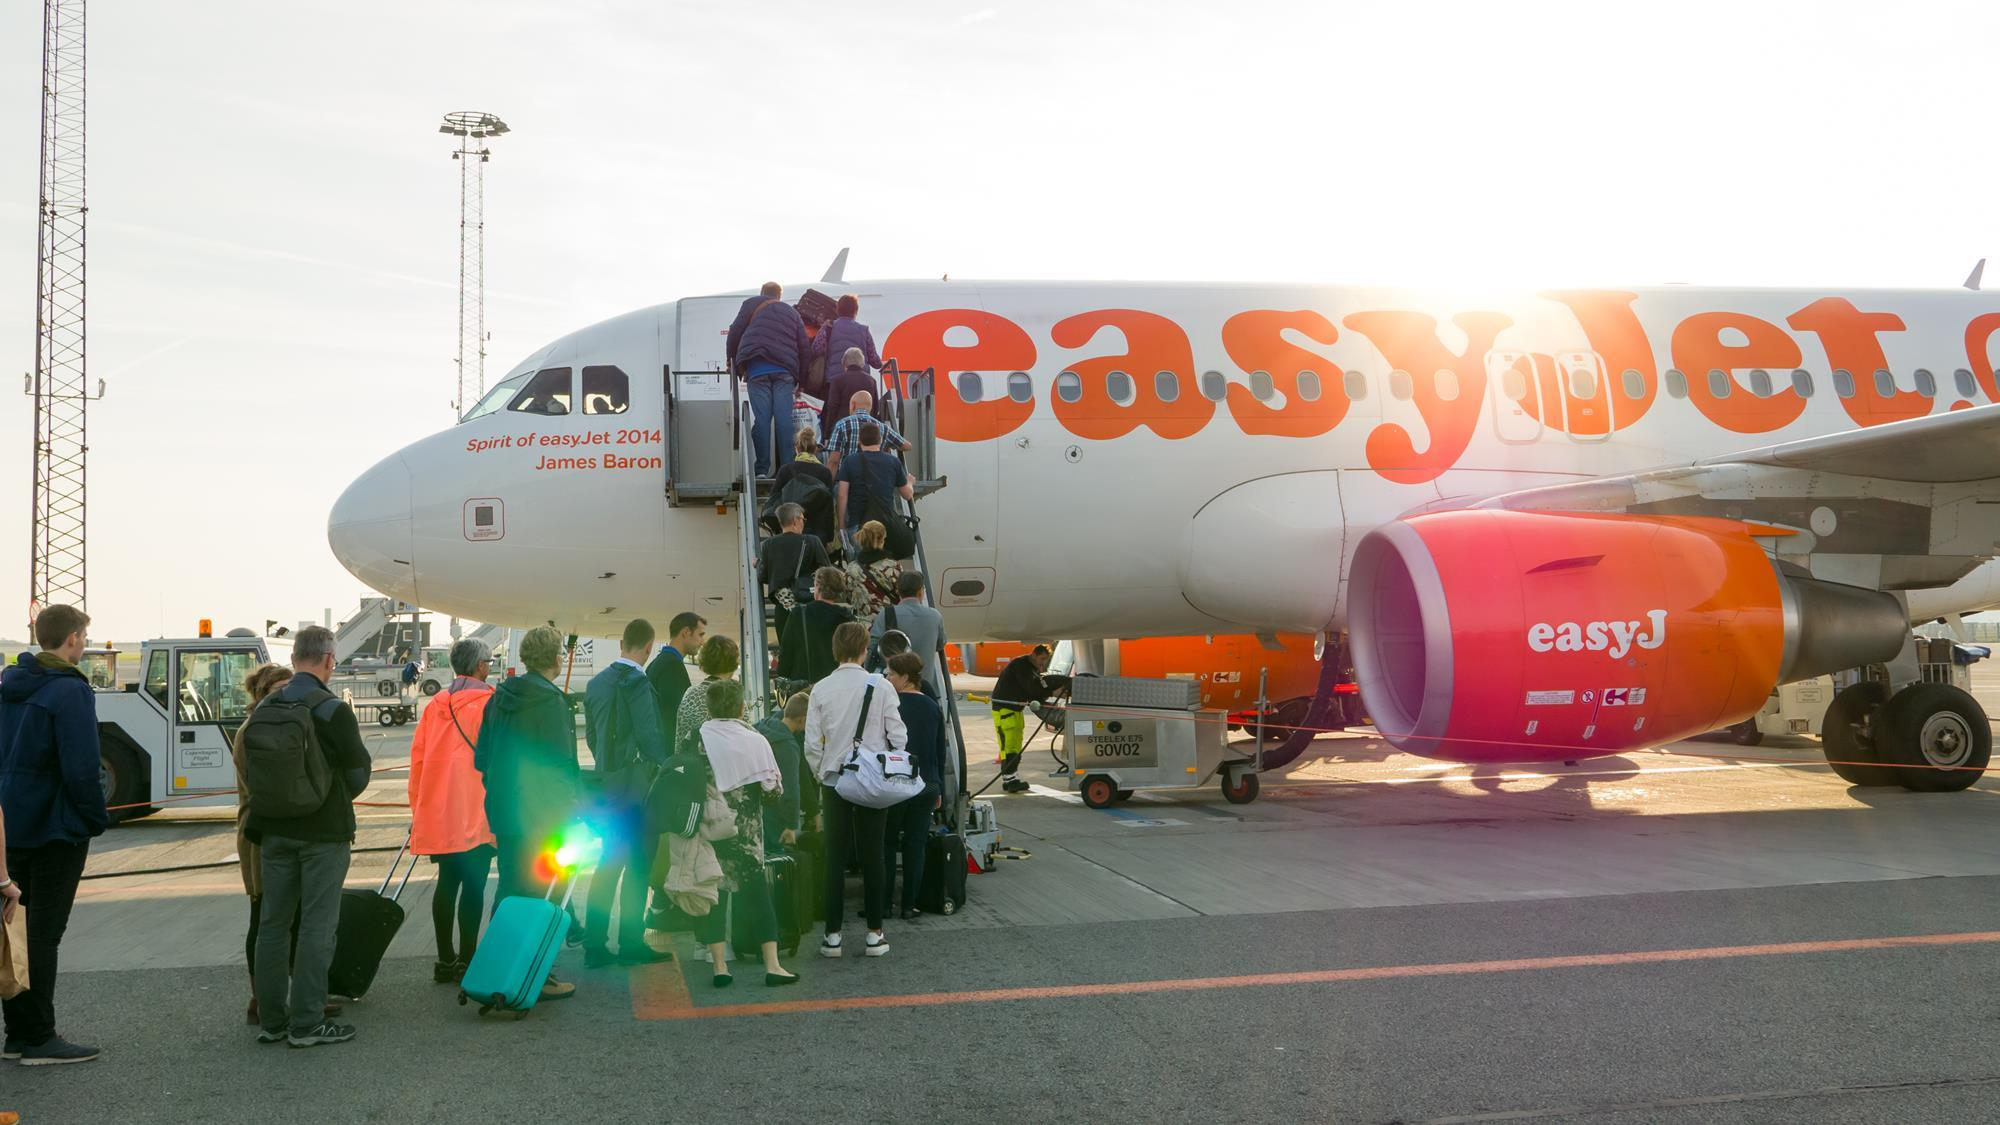 flightglobal.com - Murdo Morrison - Late-booking passengers mean network planning grief for airlines